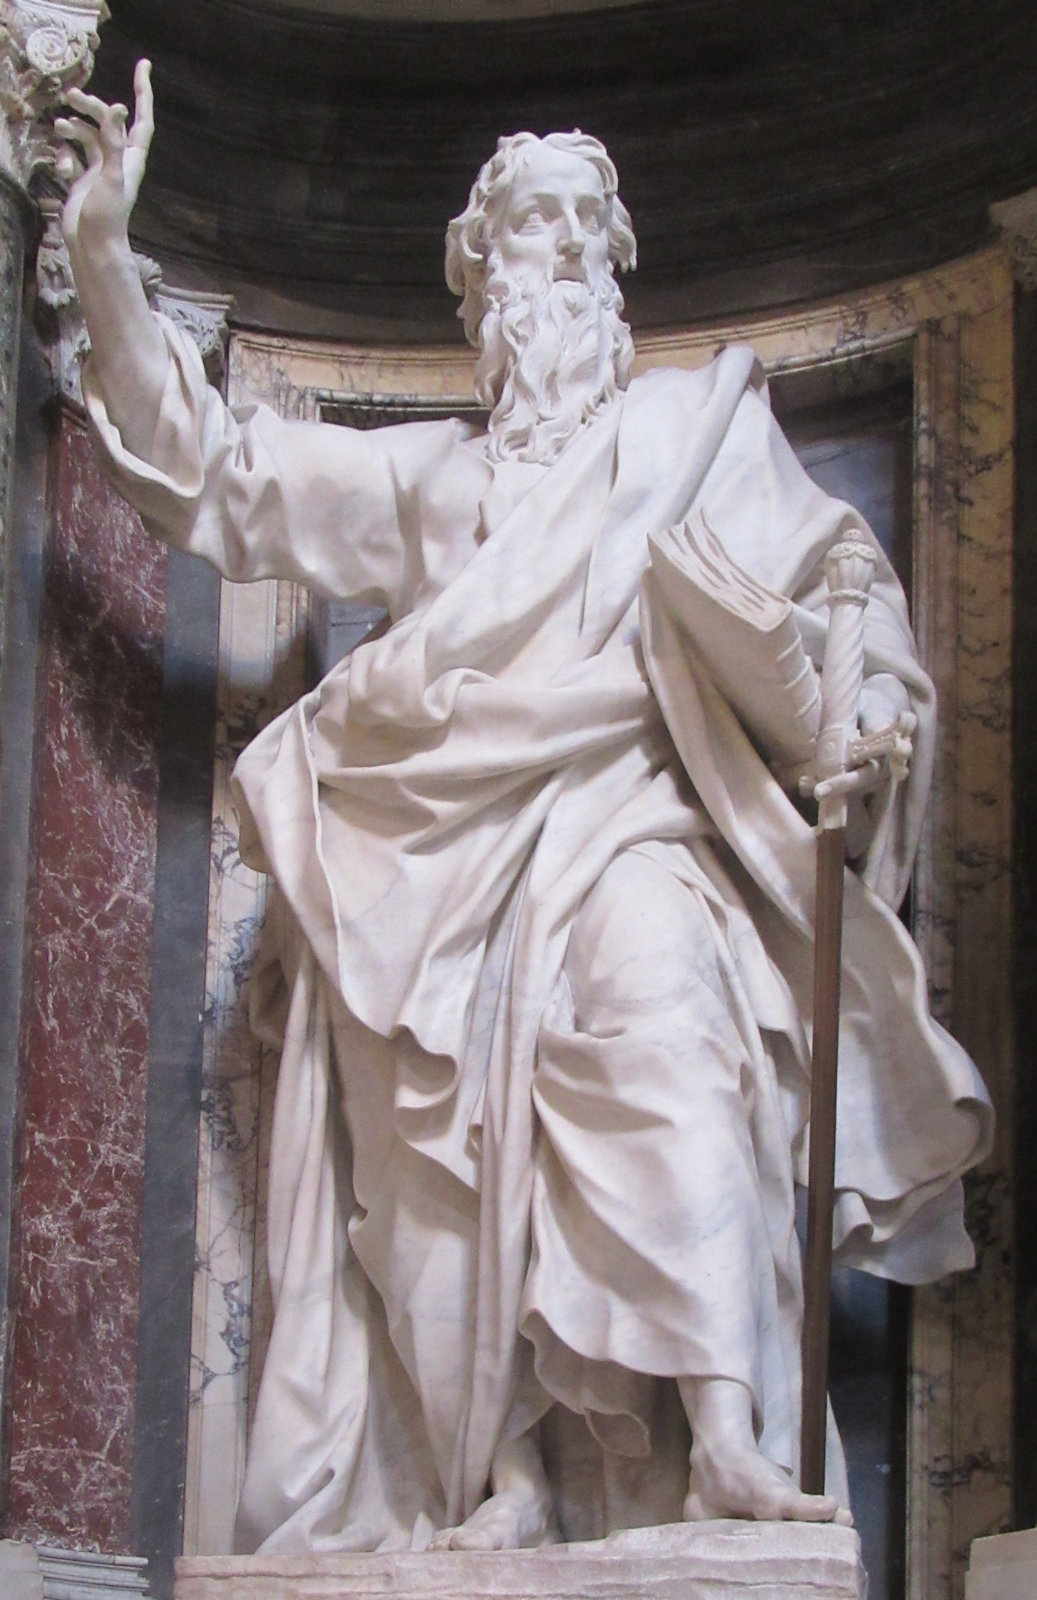 Pierre-Étienne Monnot: Statue, 1705 - 1711, in der Basilika San Giovanni in Laterano in Rom